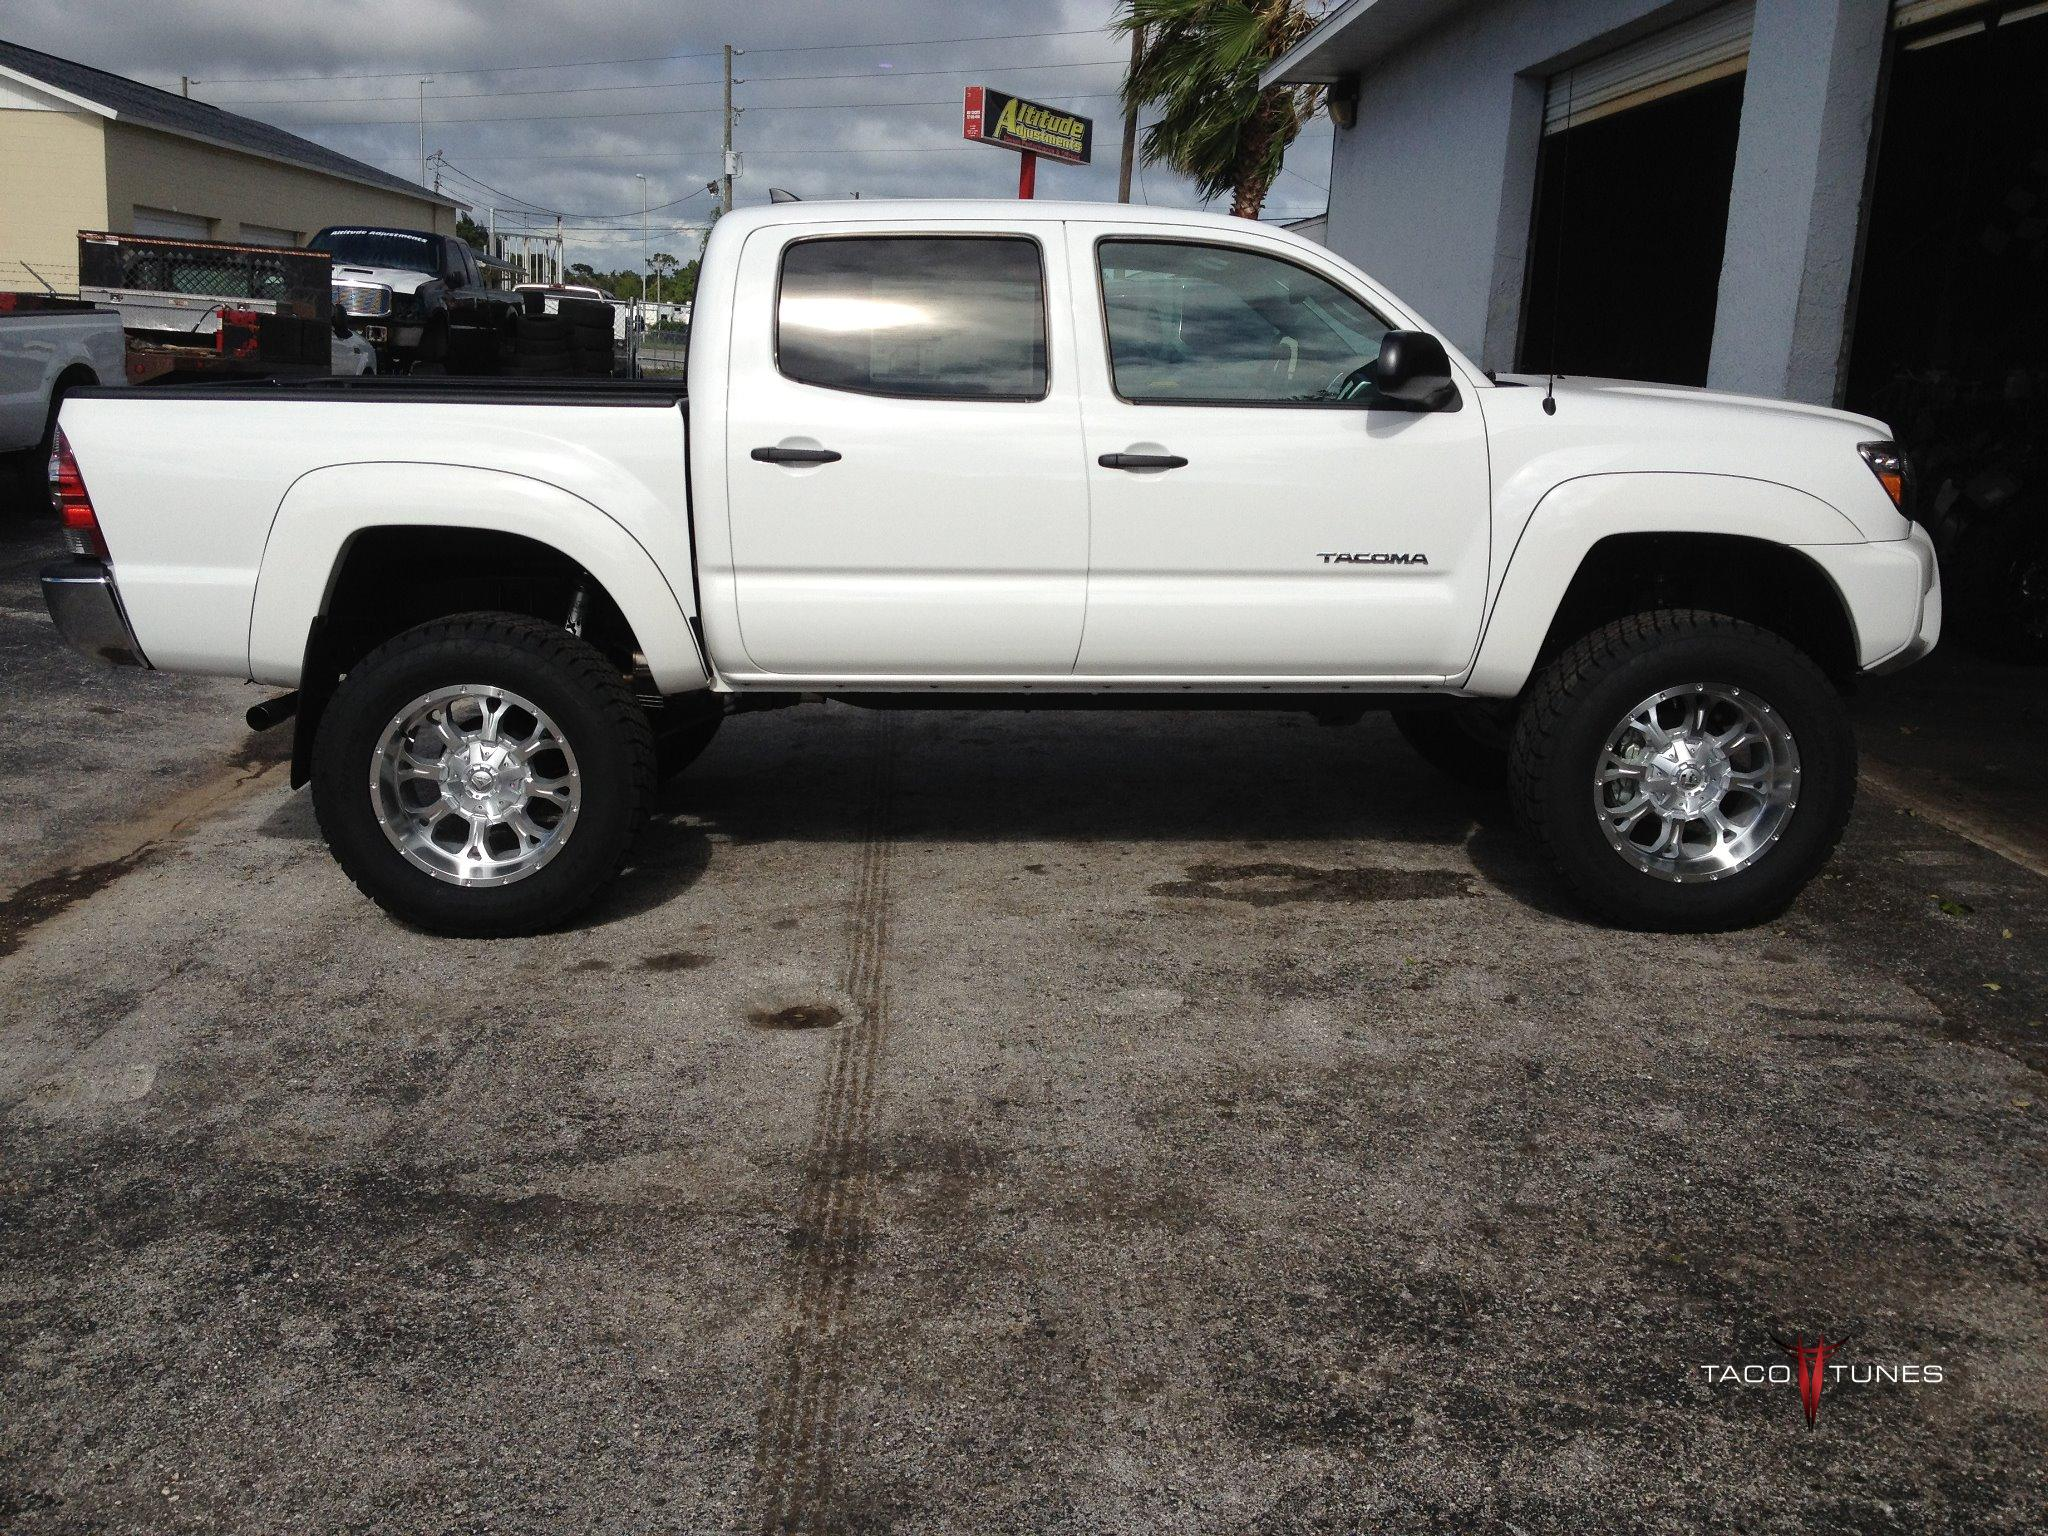 Bds Suspension Lift Kit Before And After Pictures Tires Wheels Specs 2004 Toyota Tundra Double Cab Lifted Camry 8